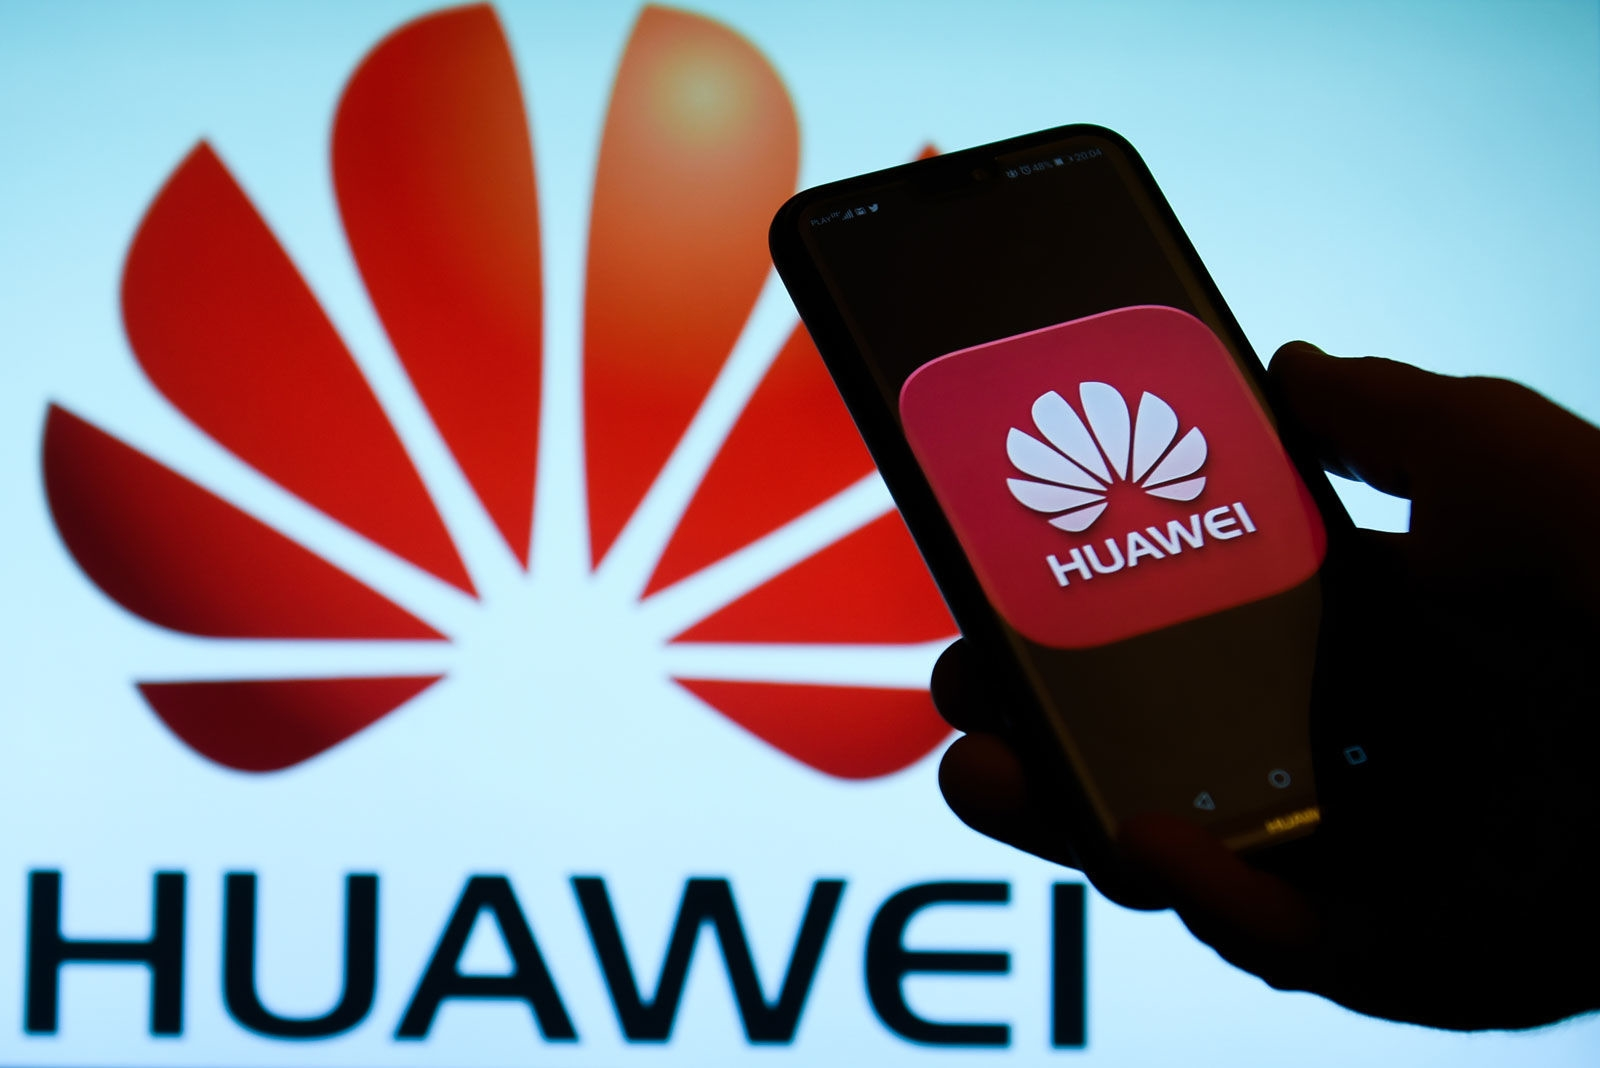 Huawei is working on a foldable 5G smartphone | DeviceDaily.com